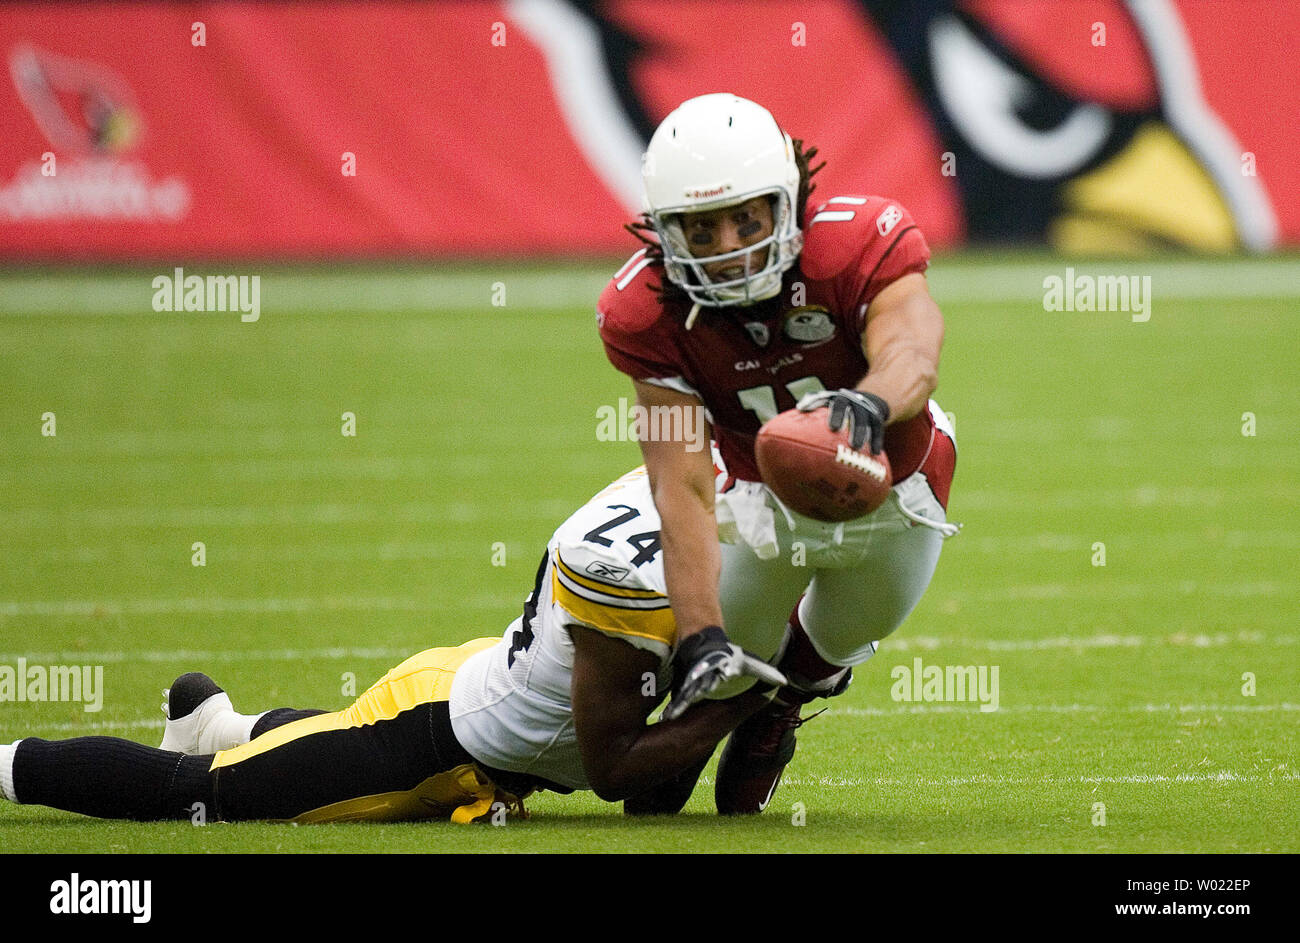 738c1092 Pittsburgh Steelers Ike Taylor tackles Arizona Cardinals Larry ...